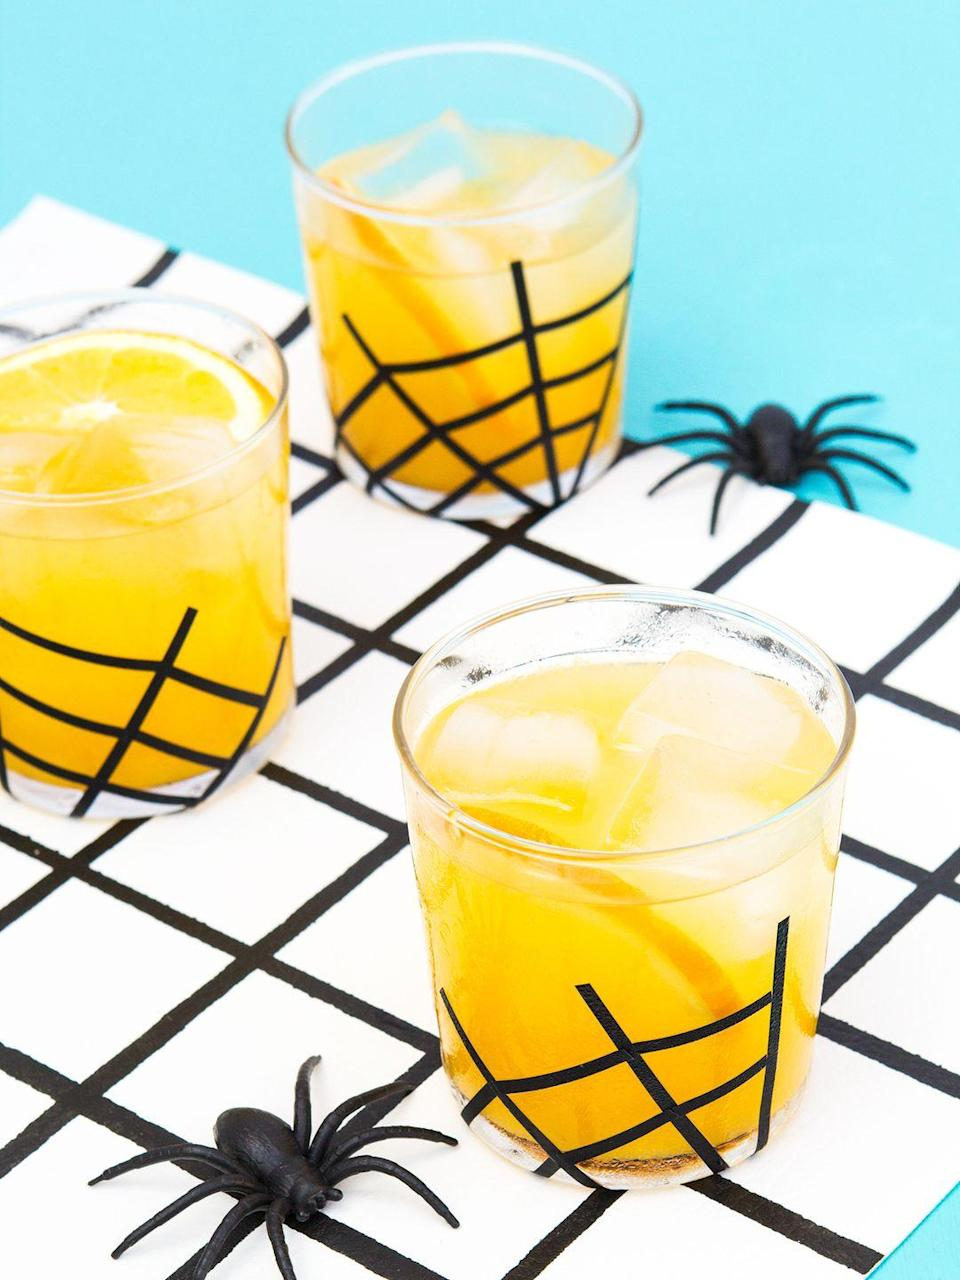 """<p>Spiced simple syrup, orange juice, and gin join forces in this sweet, autumnal drink. Included in the recipe is a DIY tutorial for the spider glassware detailing to add a spooky touch. </p><p><strong>Get the recipe at <a href=""""https://sarahhearts.com/spiced-gin-and-juice/"""" rel=""""nofollow noopener"""" target=""""_blank"""" data-ylk=""""slk:Sarah Hearts"""" class=""""link rapid-noclick-resp"""">Sarah Hearts</a>. </strong></p><p><strong><a class=""""link rapid-noclick-resp"""" href=""""https://www.amazon.com/Bormioli-Rocco-Bodega-Collection-Glassware/dp/B000PG9BZO/?tag=syn-yahoo-20&ascsubtag=%5Bartid%7C2164.g.36792938%5Bsrc%7Cyahoo-us"""" rel=""""nofollow noopener"""" target=""""_blank"""" data-ylk=""""slk:SHOP GLASSES"""">SHOP GLASSES</a></strong></p>"""